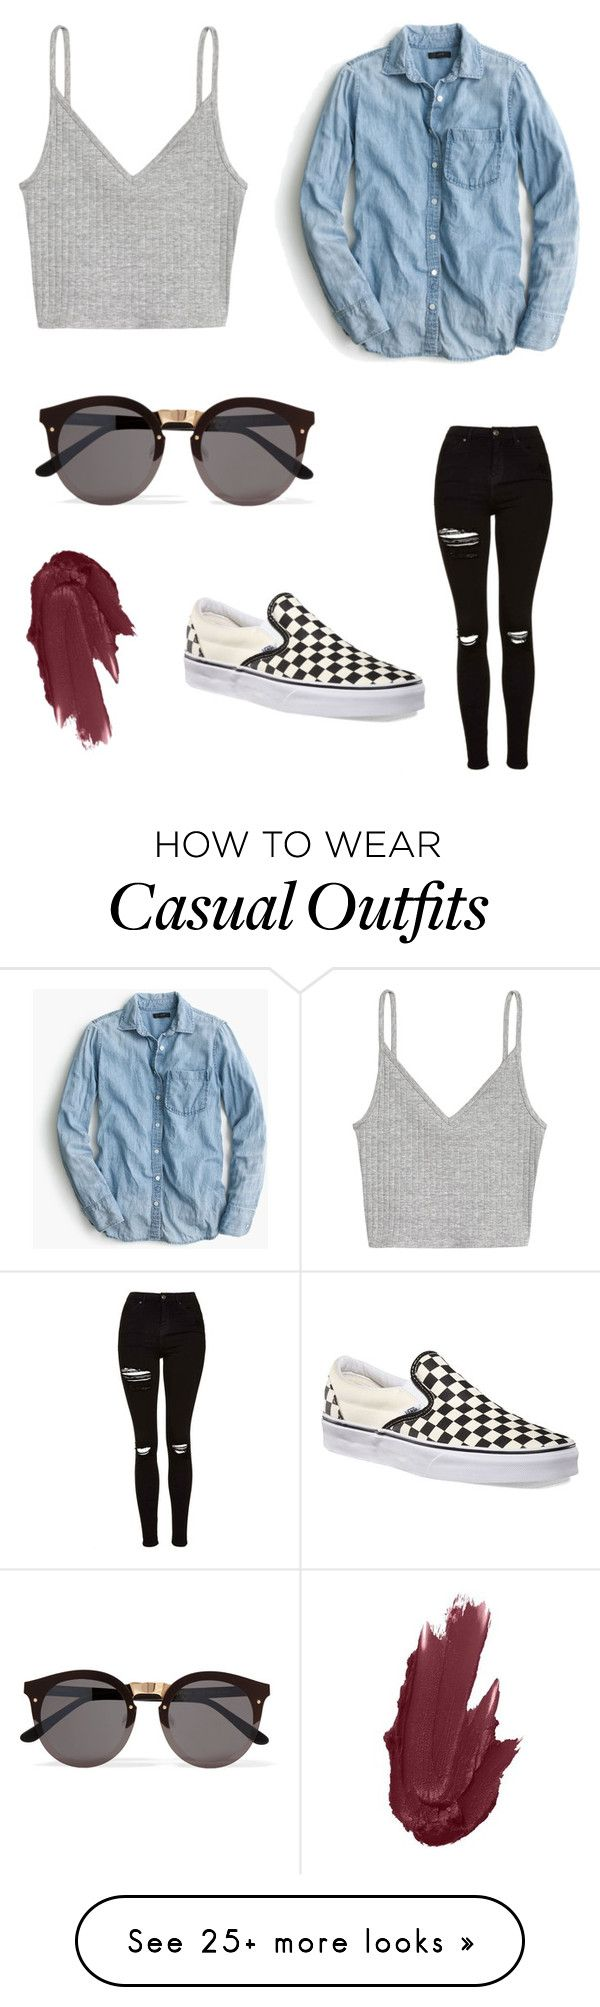 """""""casual first date"""" by pikachufoster on Polyvore featuring H&M, J.Crew, Topshop, Vans, Maybelline and Illesteva"""